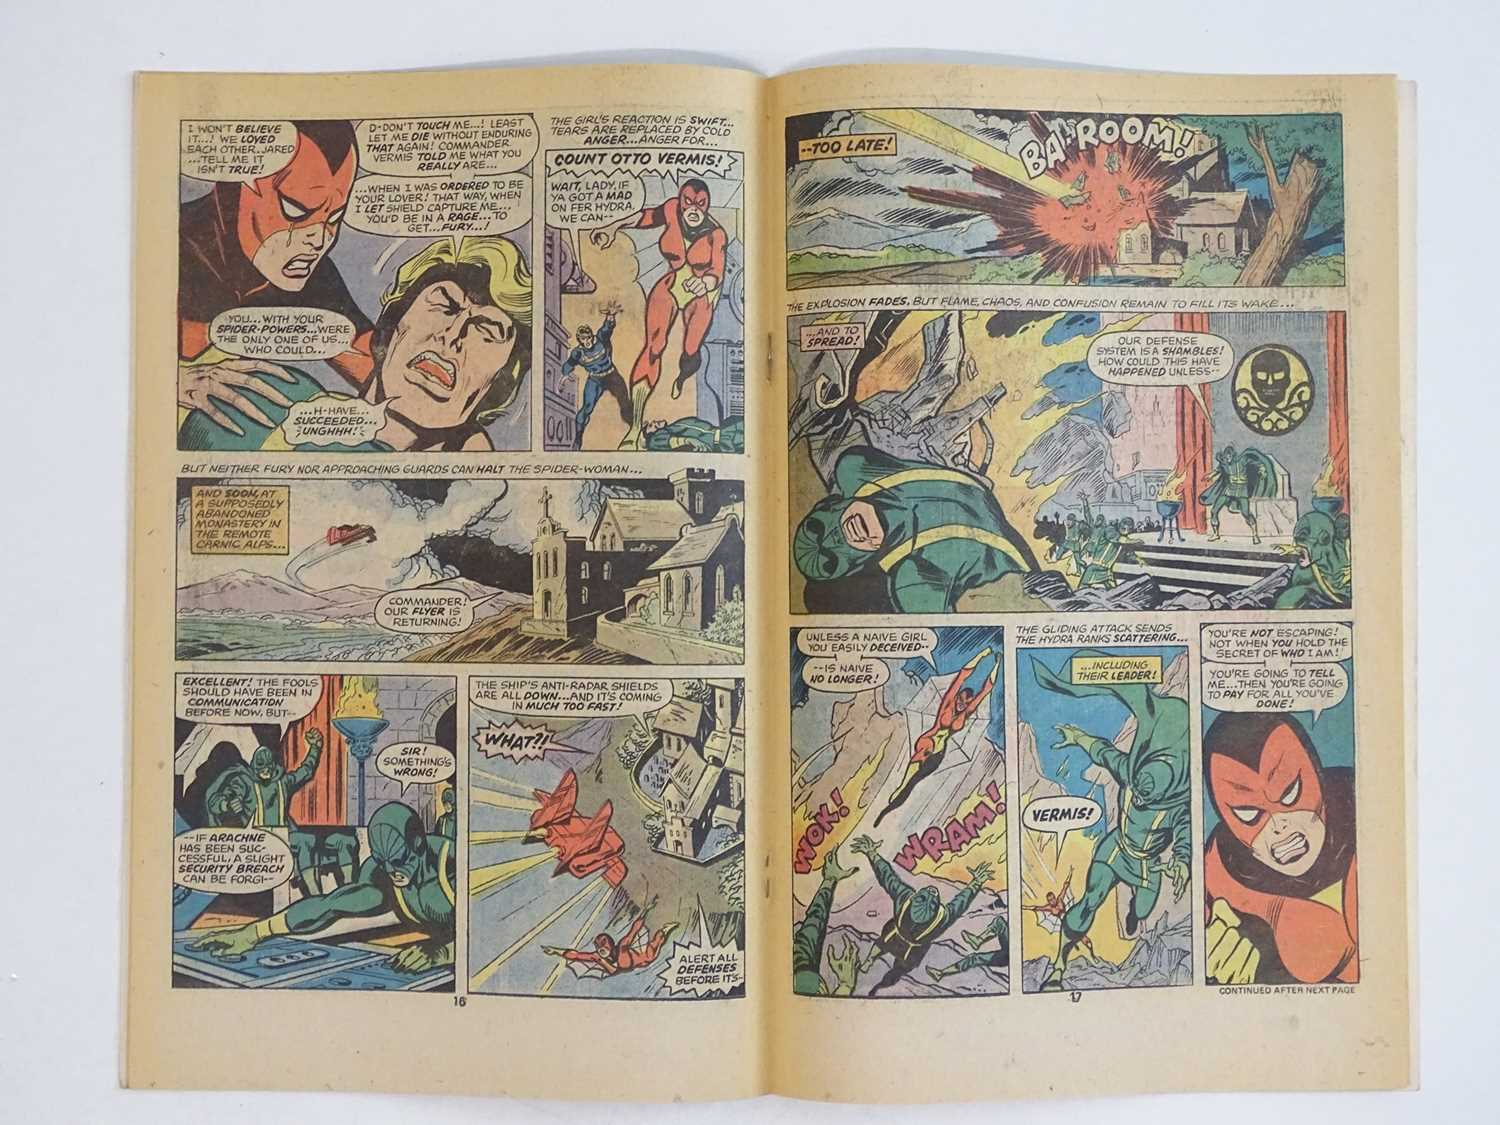 MARVEL SPOTLIGHT: SPIDER-WOMAN #32 - (1977 - MARVEL) - Origin and First appearance of Spider-Woman + - Image 5 of 9